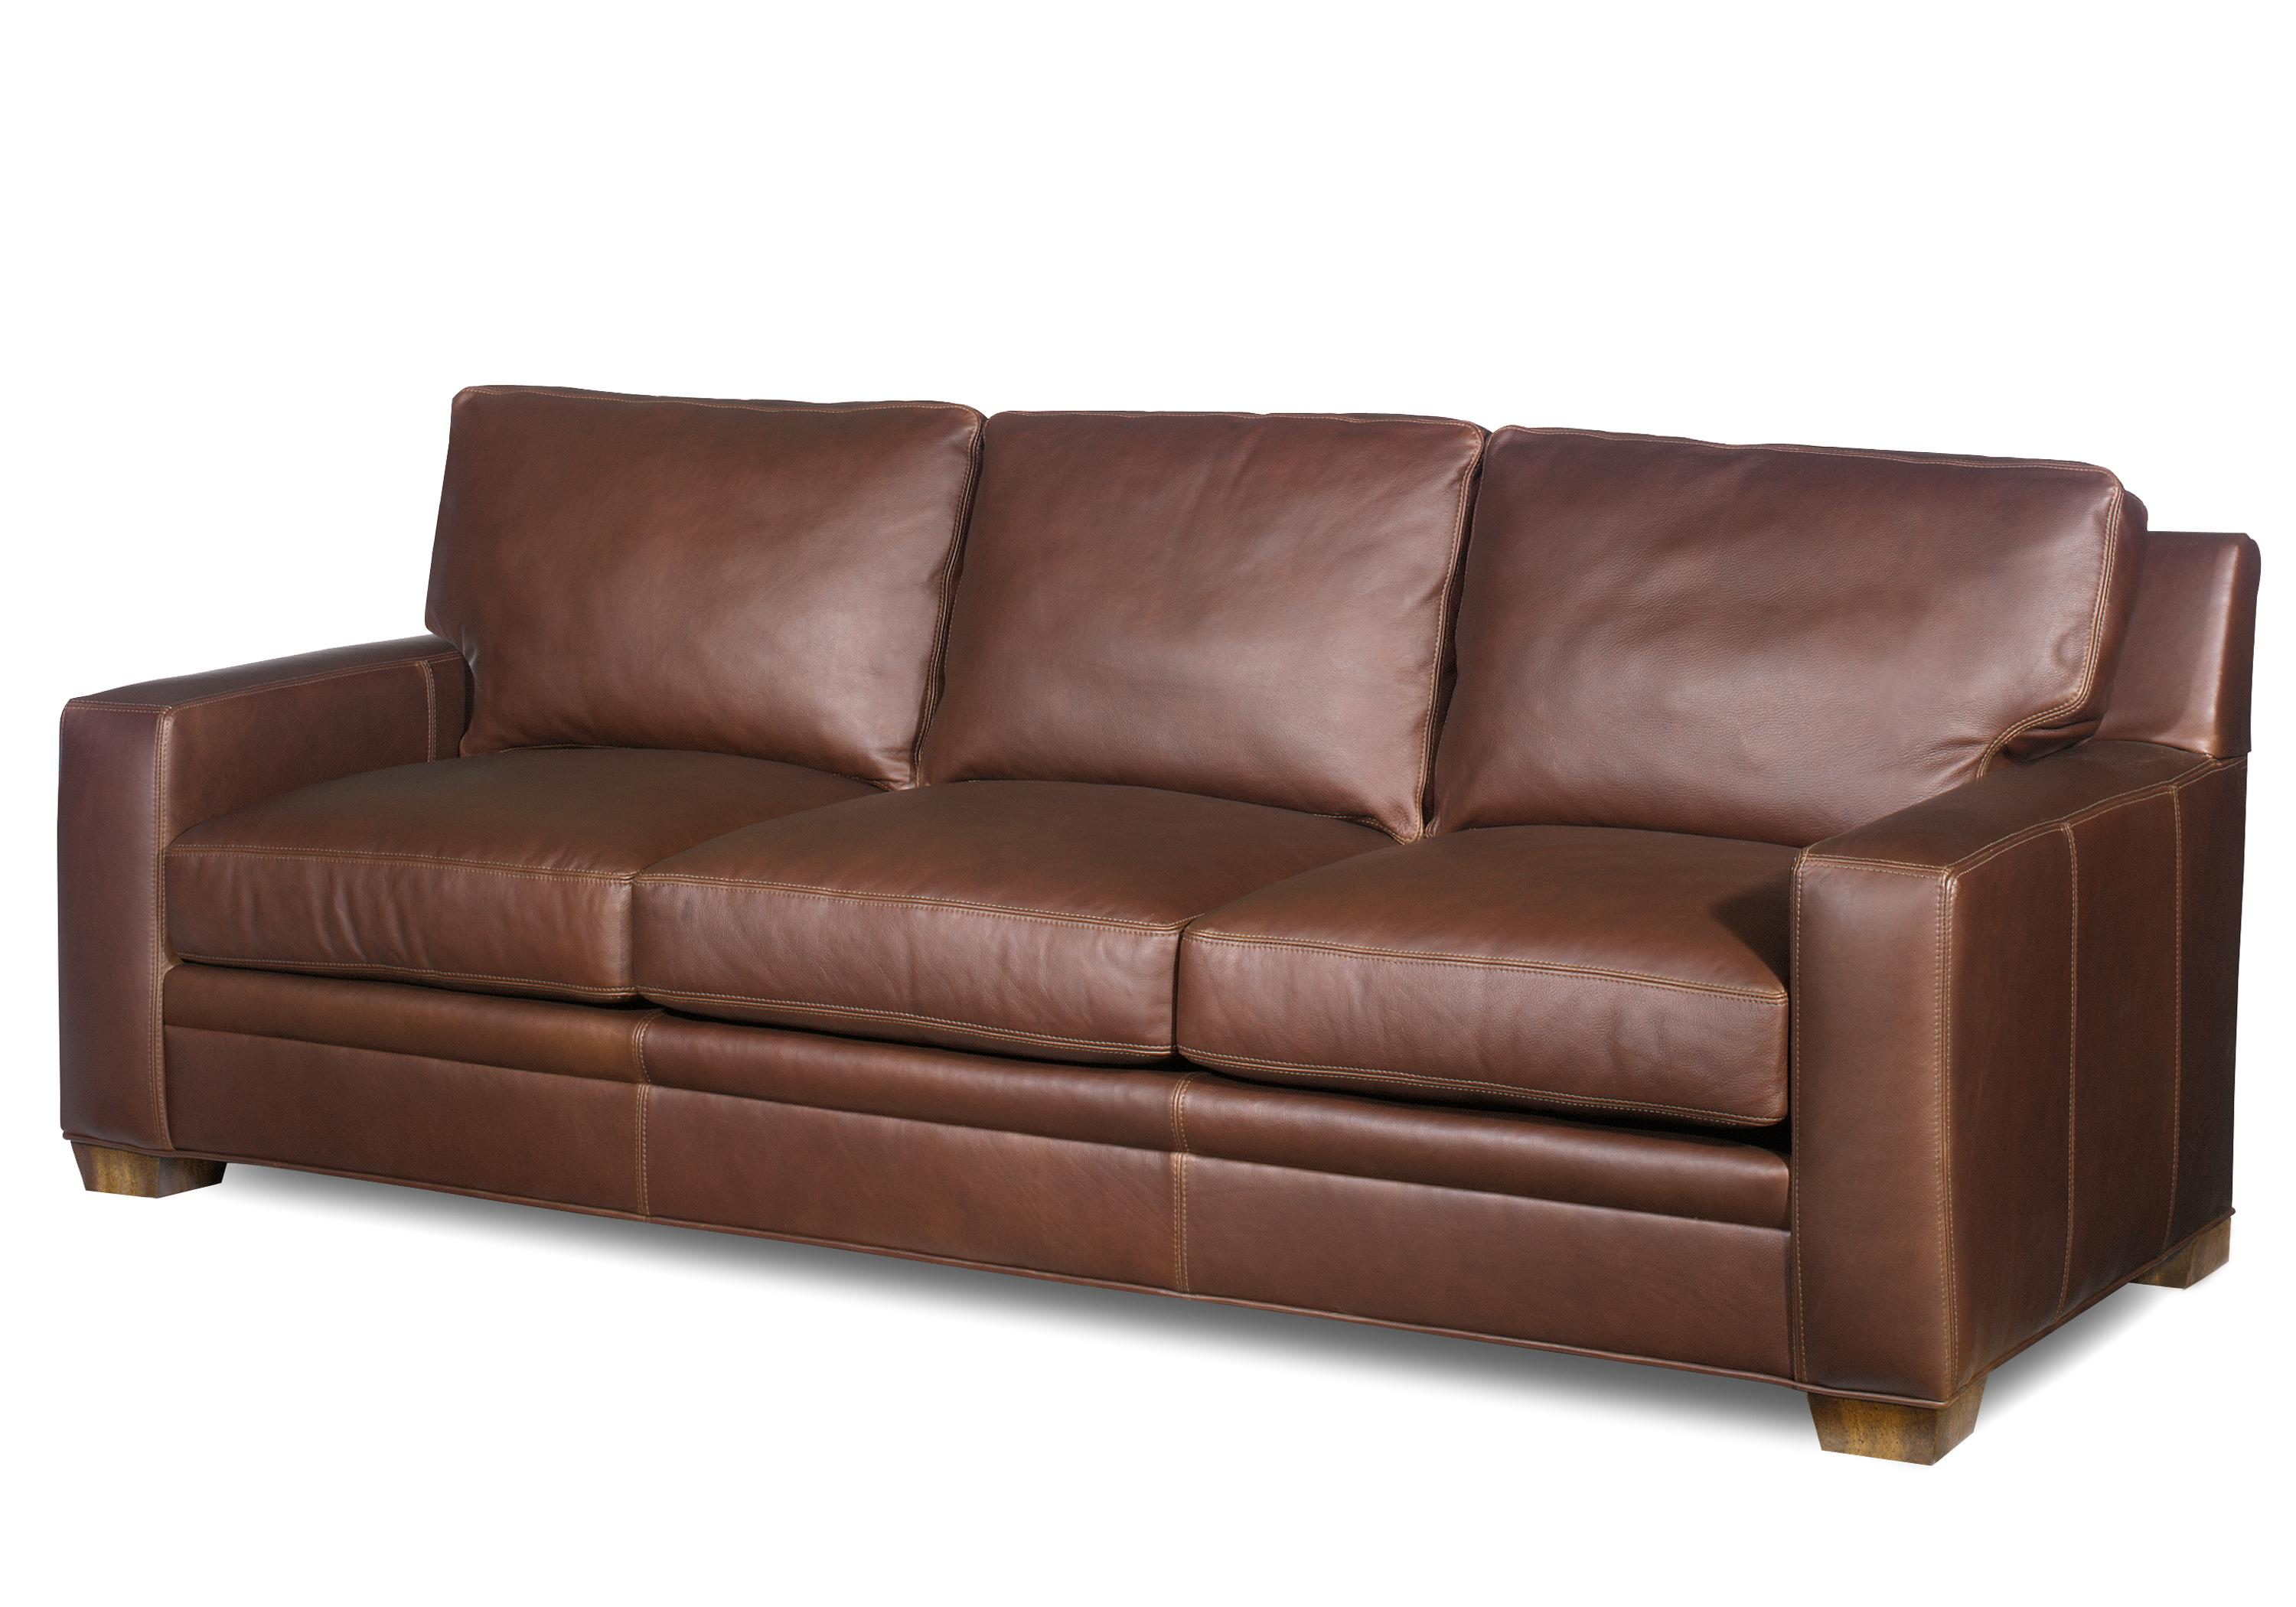 Stationary Seating Hanley Stationary Sofa by Bradington Young at Baer's Furniture